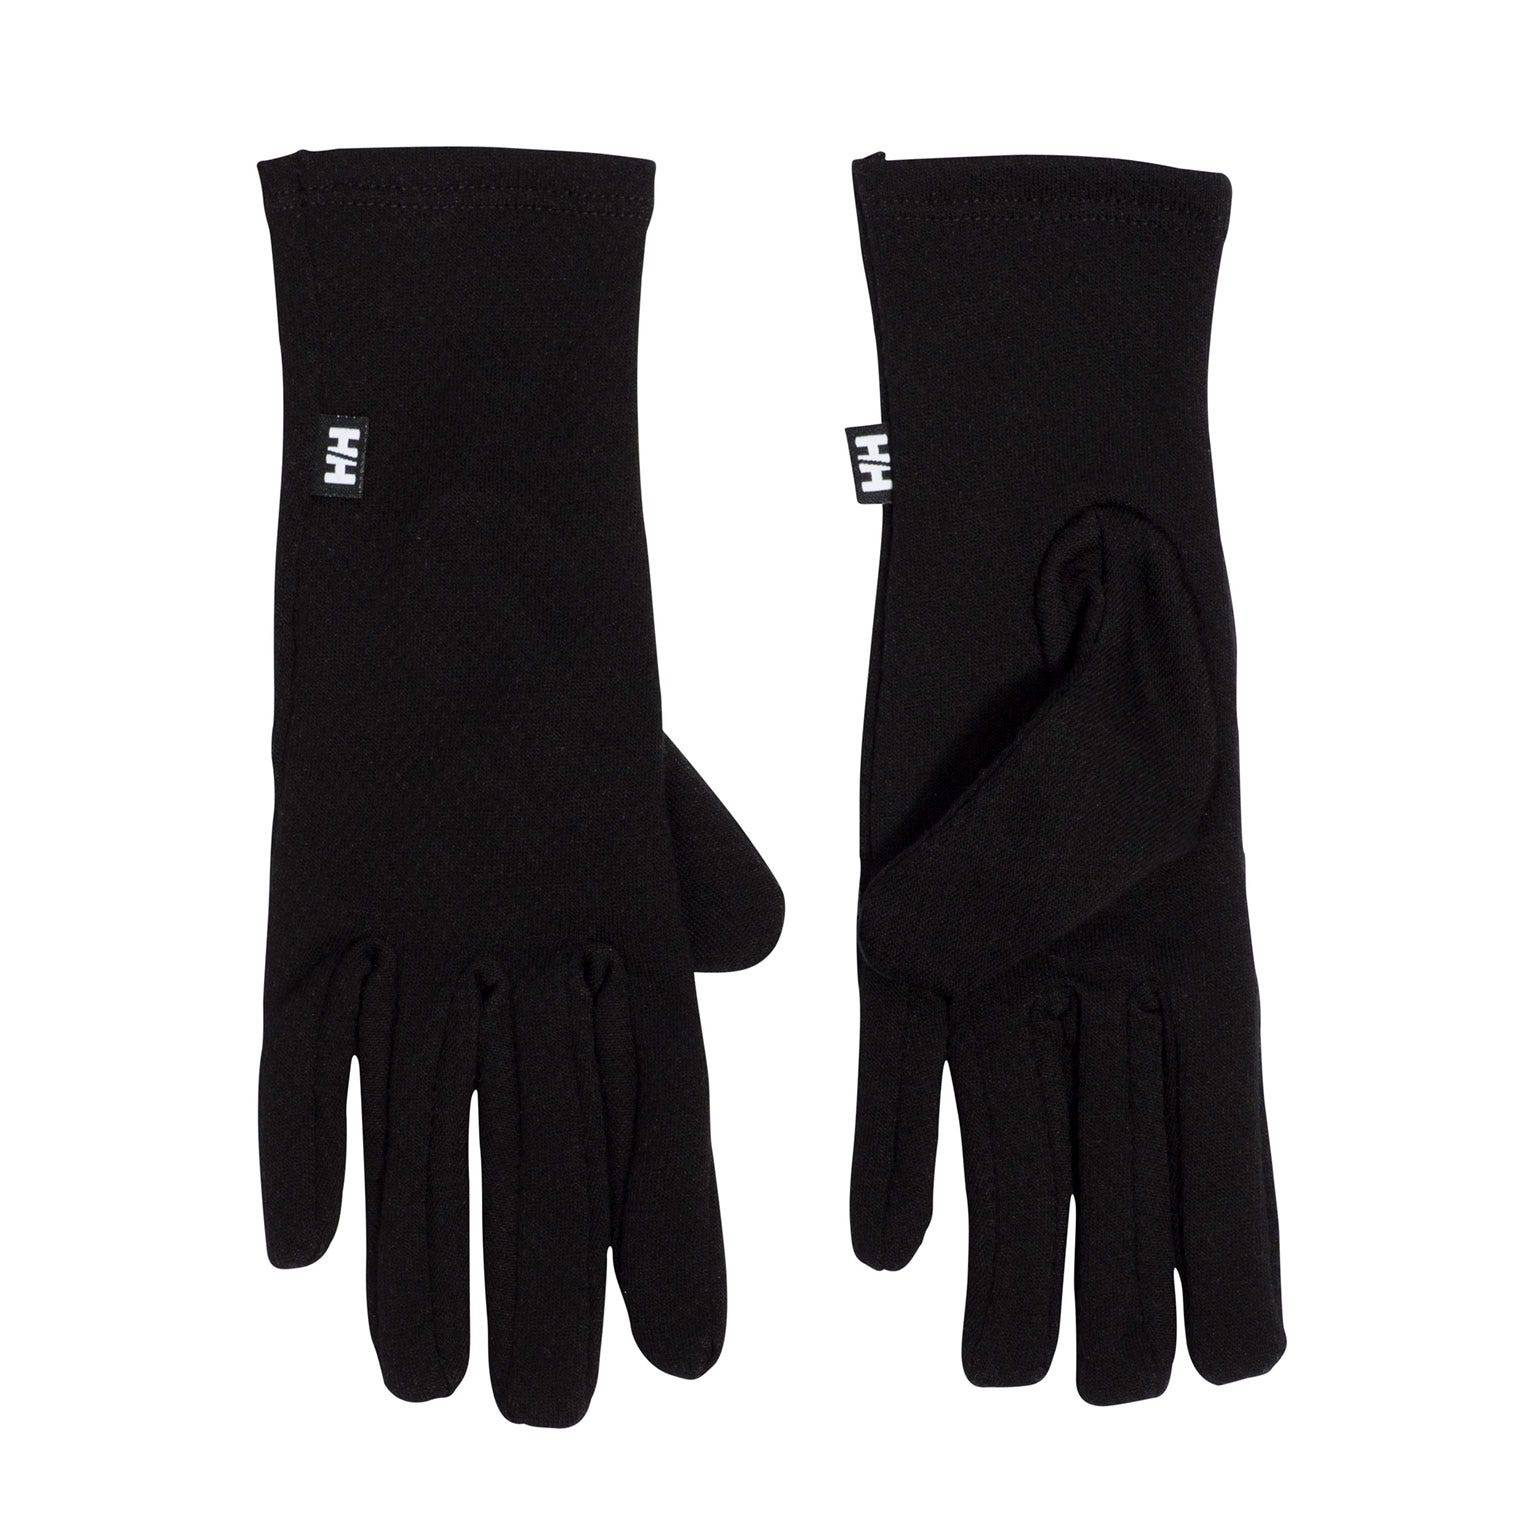 Helly Hansen Warm Glove Liner Baselayer Black M